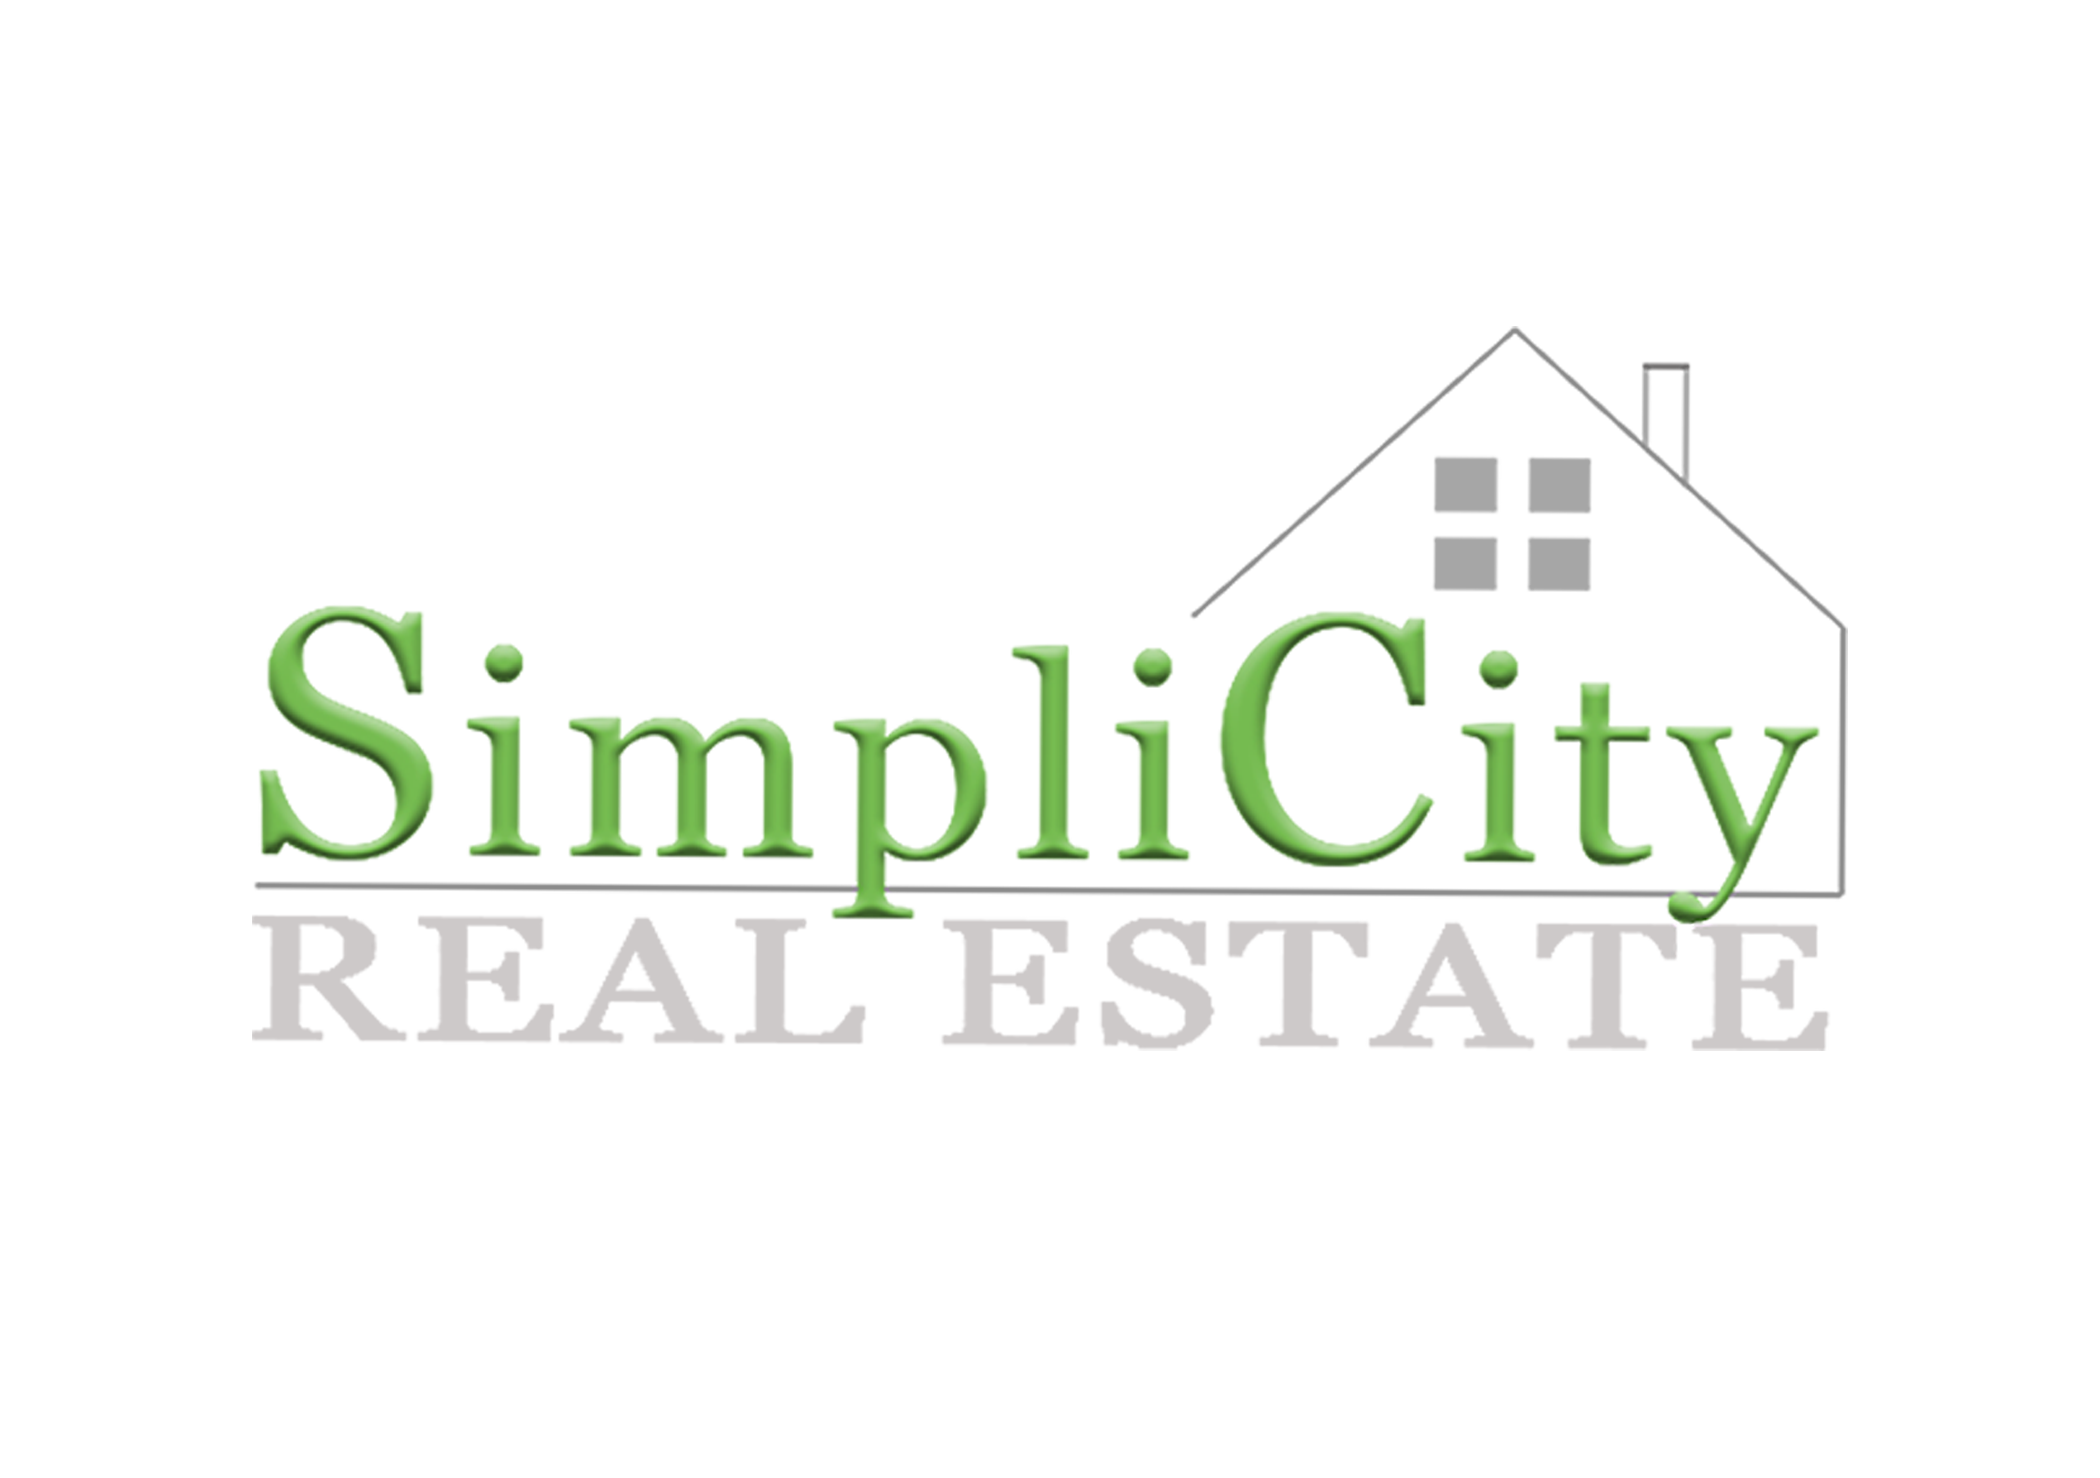 SimpliCity Real Estate logo green